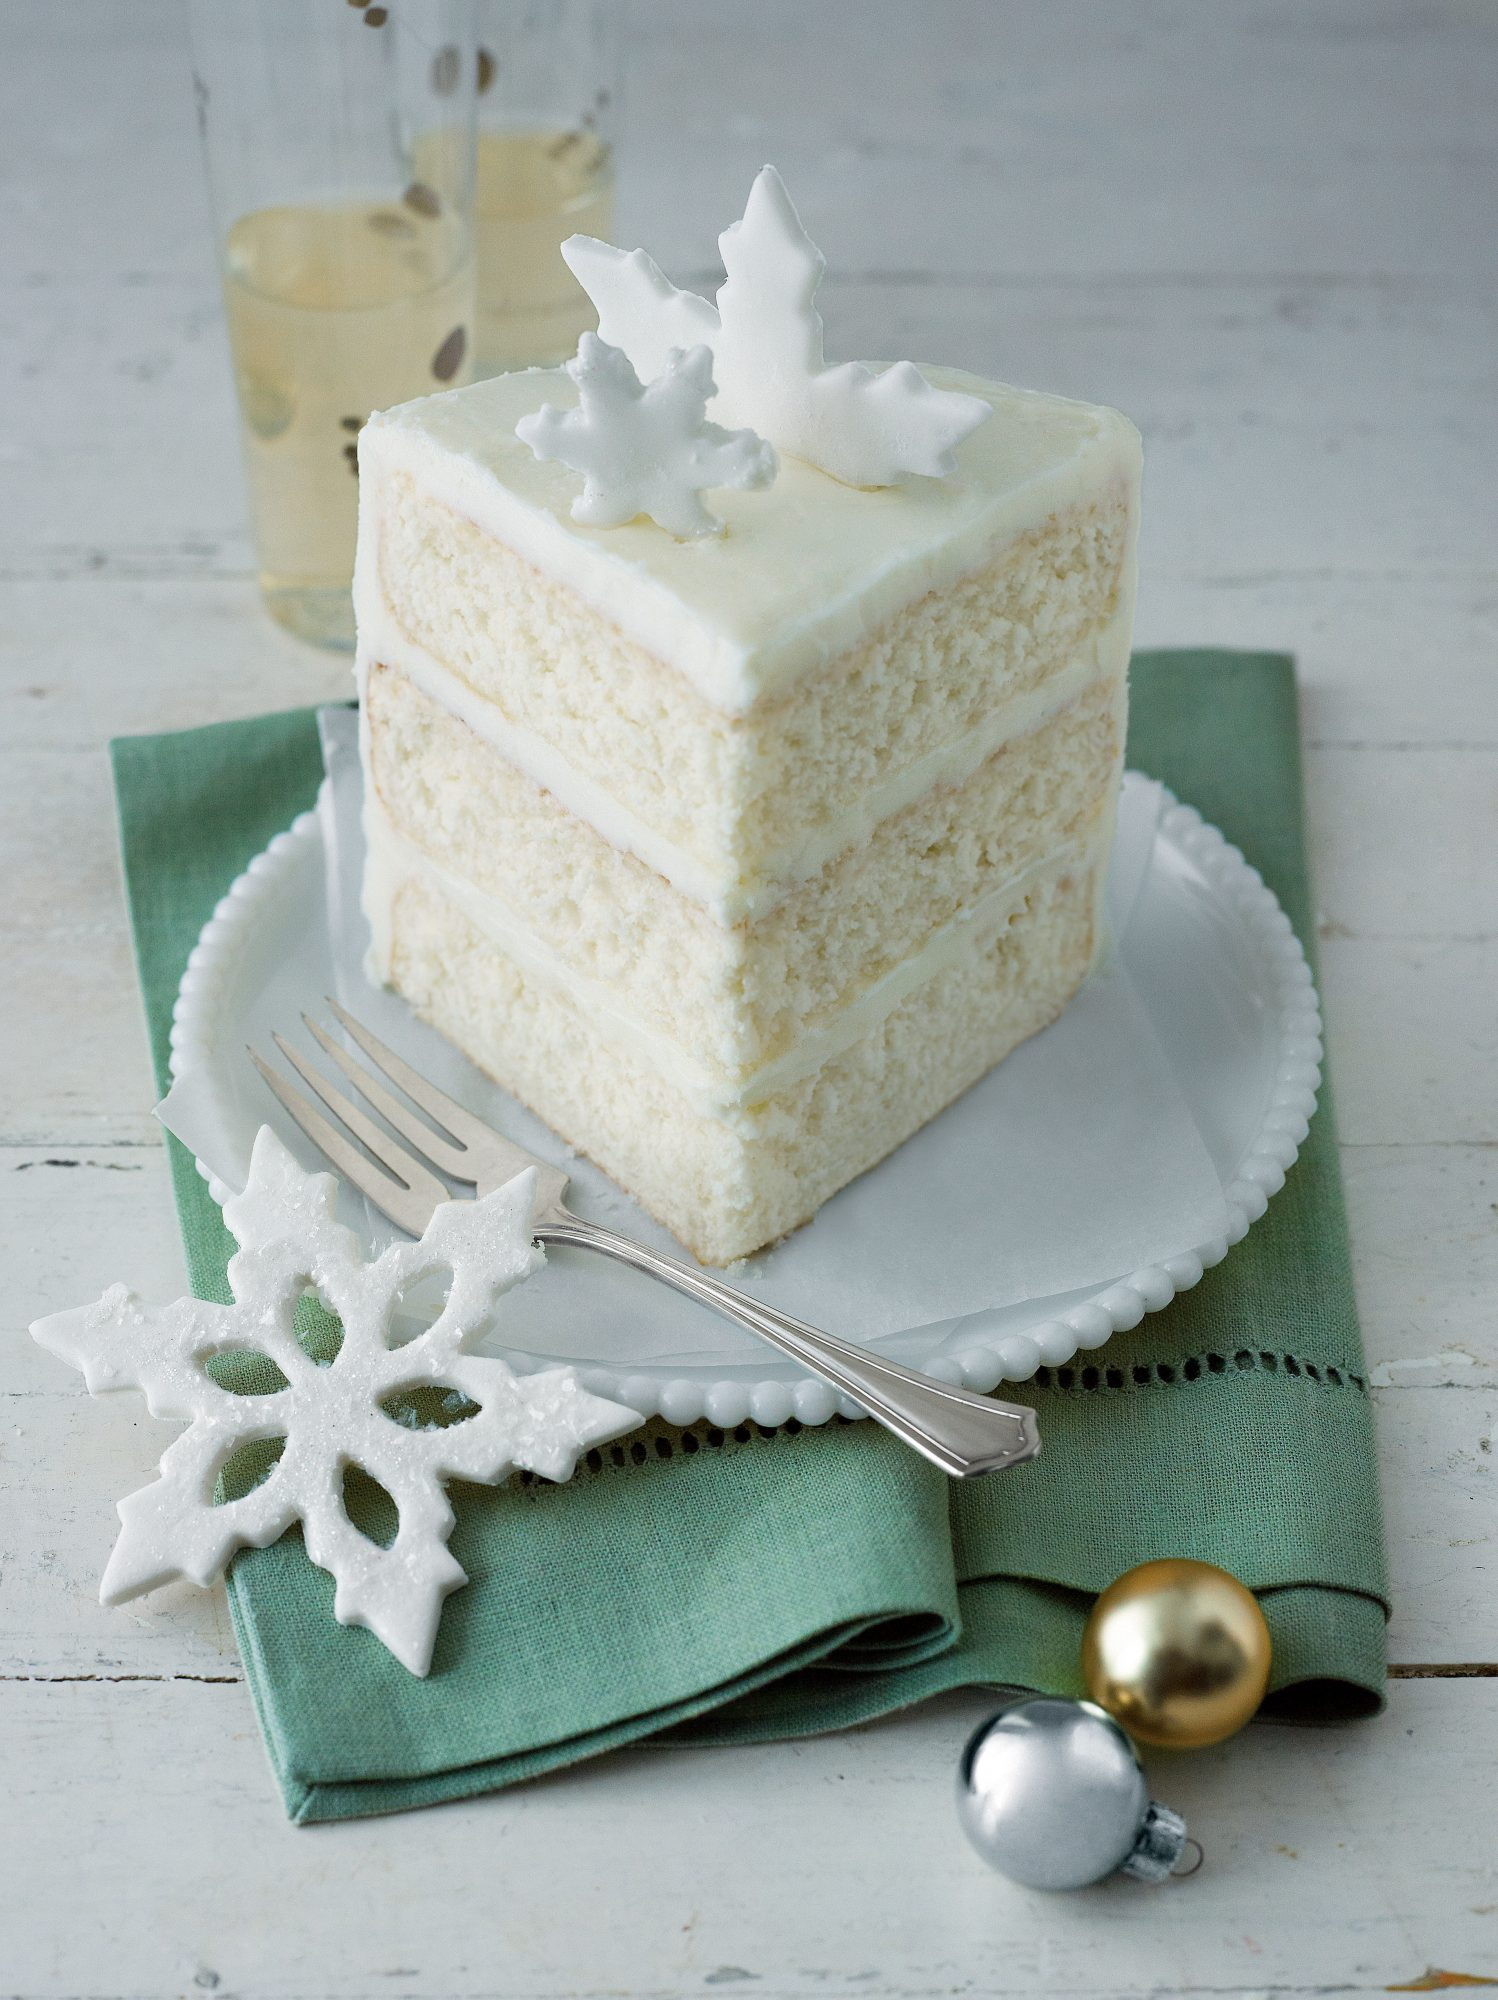 Mrs. Billett's White Cake